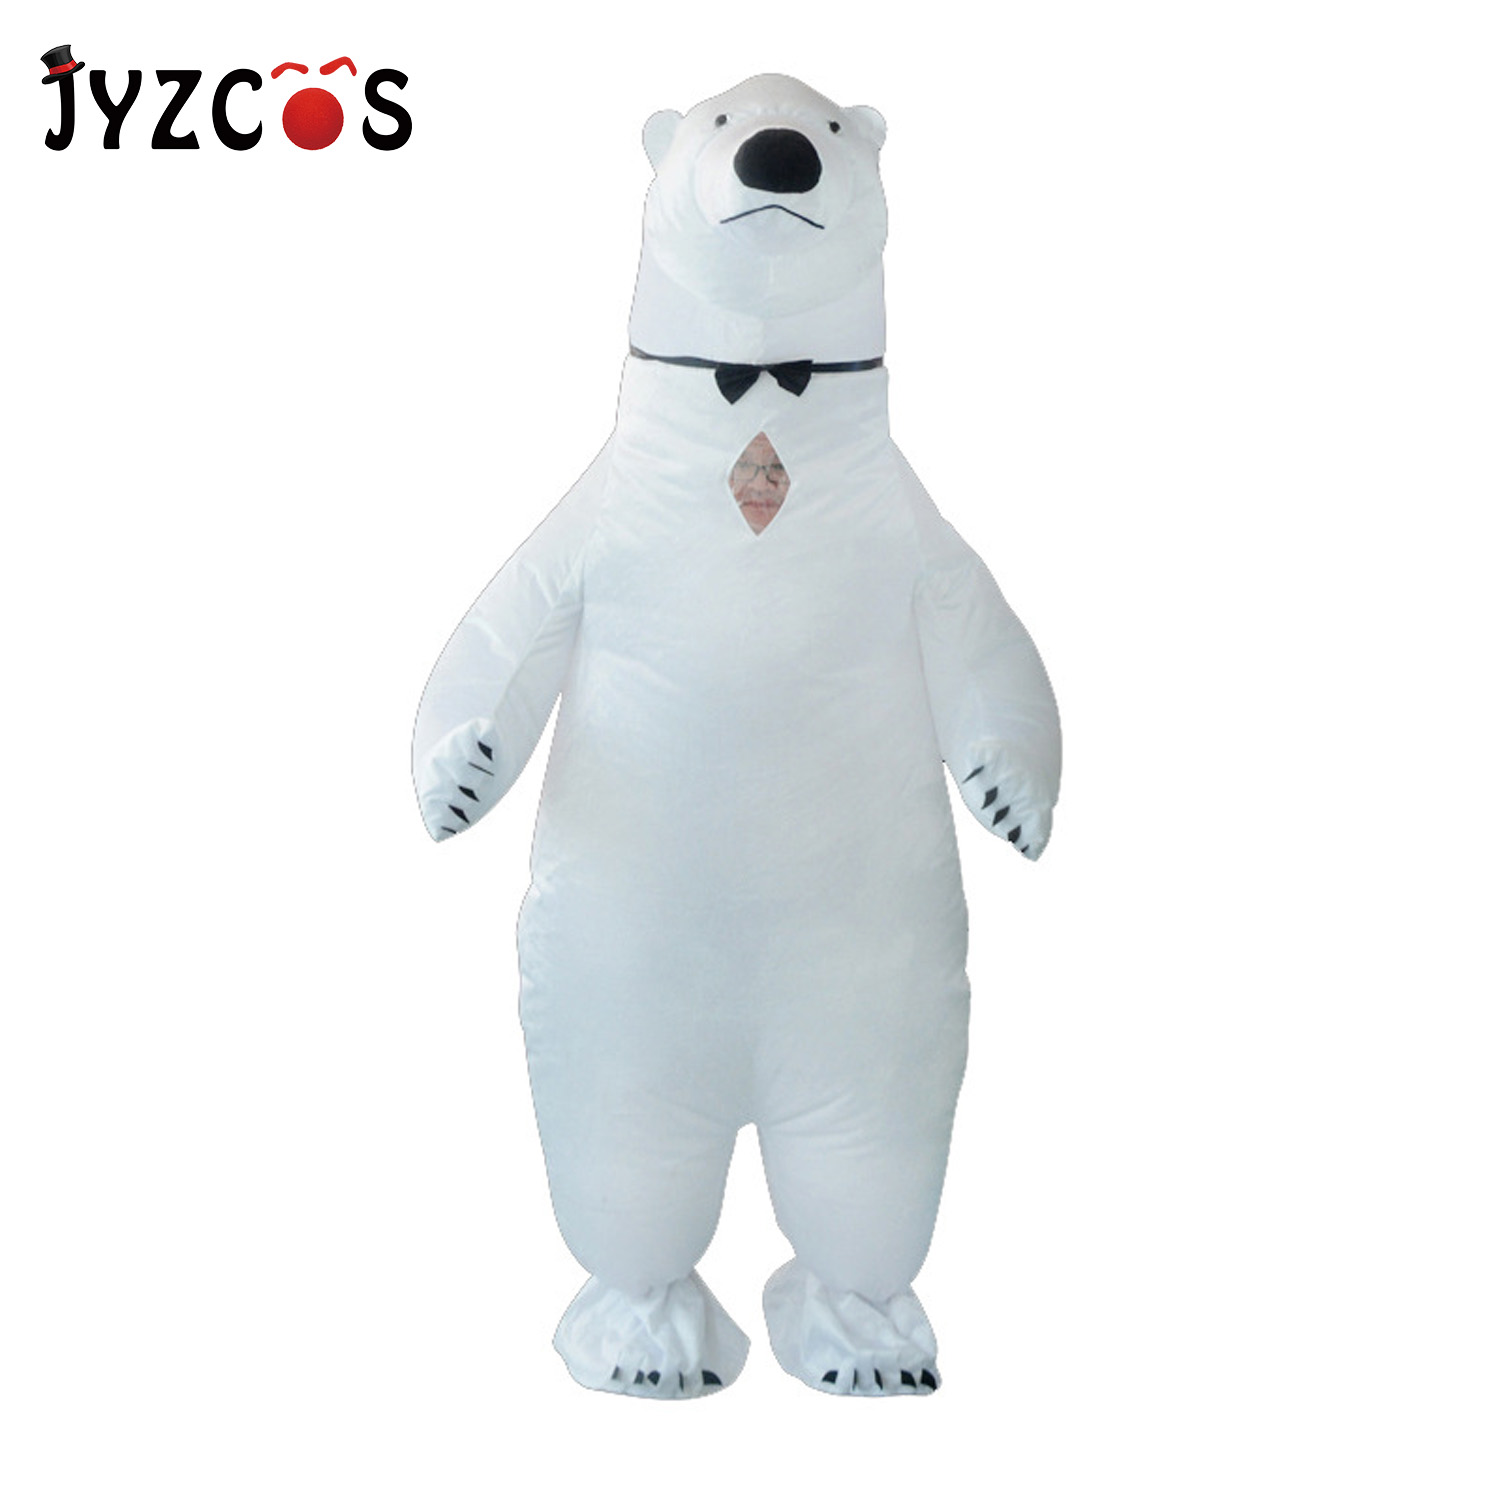 JYZCOS Halloween Party Adult Inflatable Costume Cute Polar Bear Mascot Performance Clothes Women Men Carnival Purim Cosplay Cost